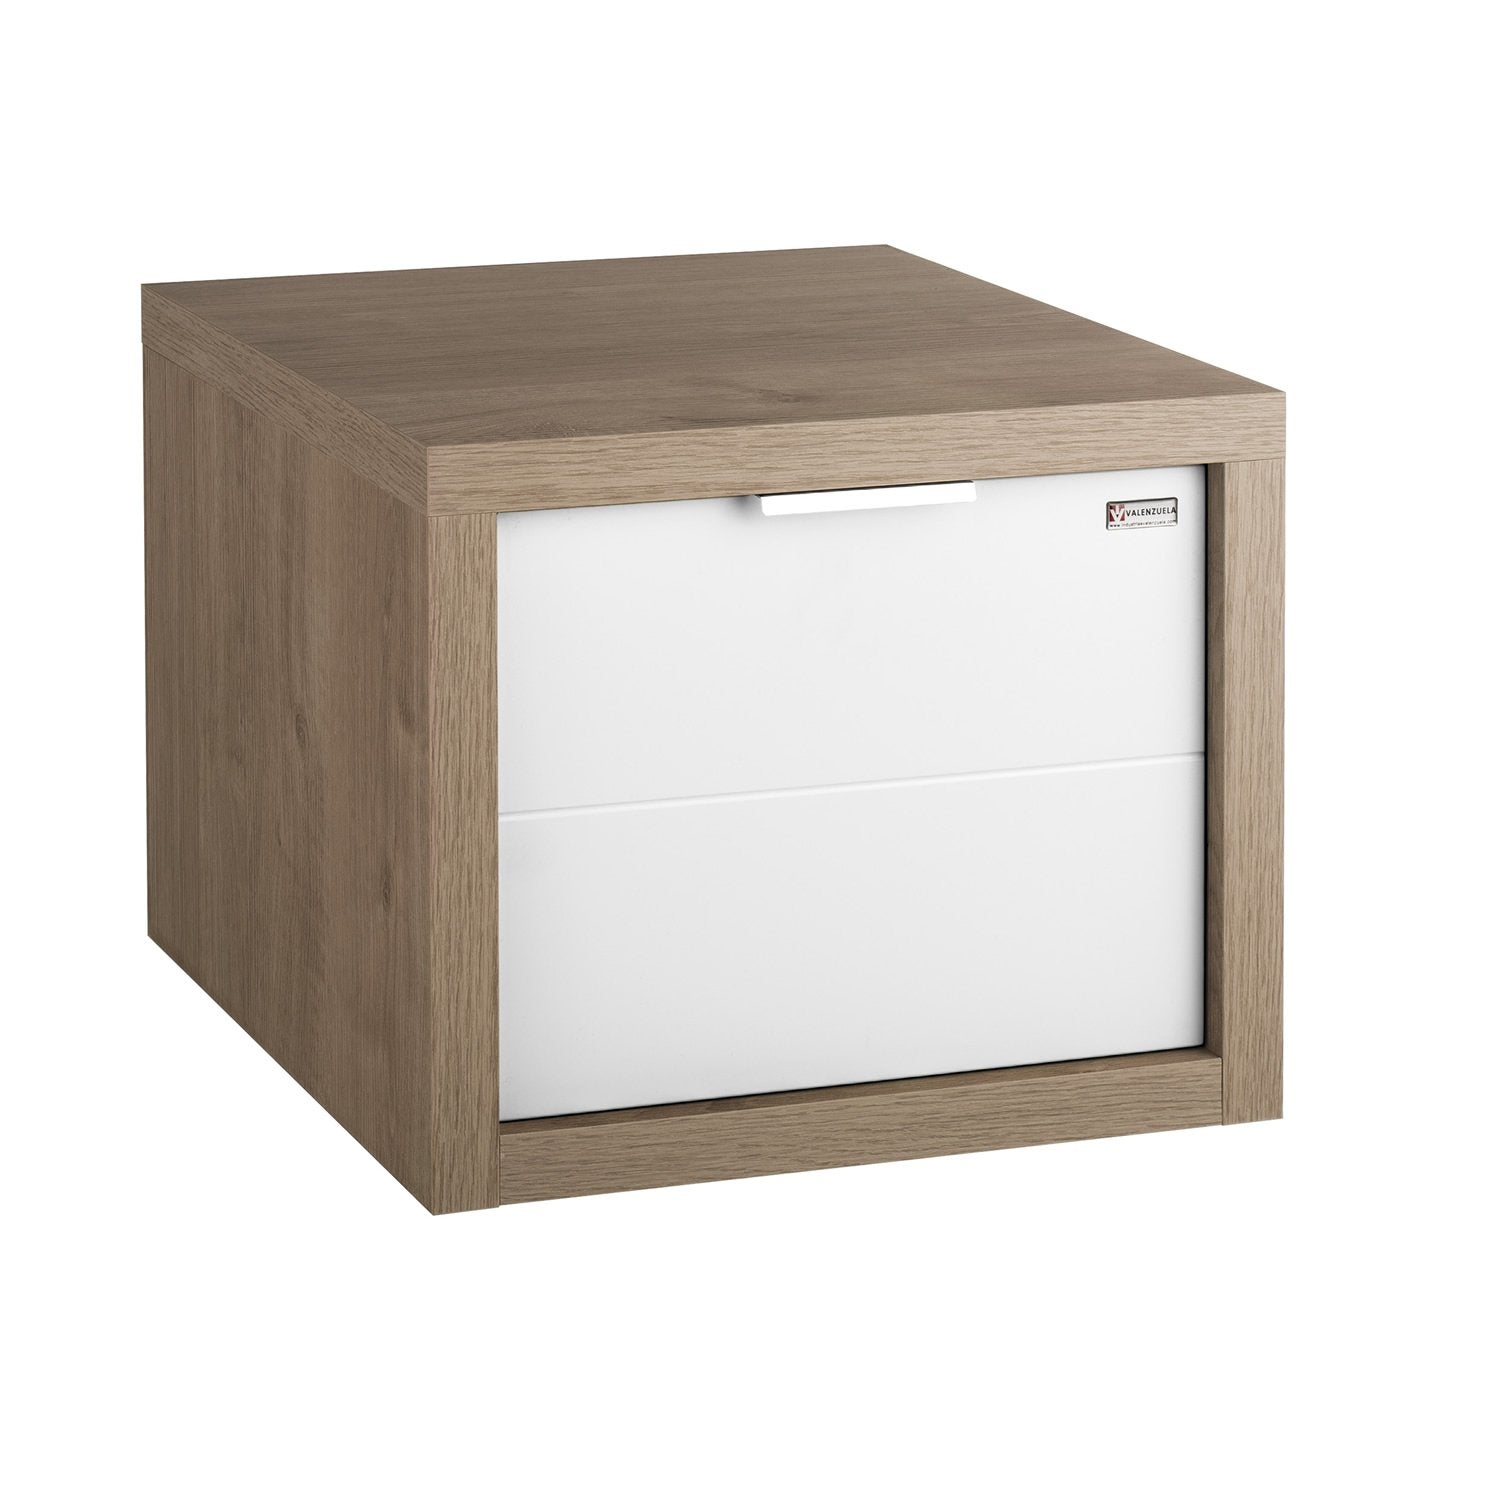 "16"" Lower Side Cabinet, Wall Mount, 1 Drawer whit Handle and Soft Close, Oak - White, Serie Tino by VALENZUELA"